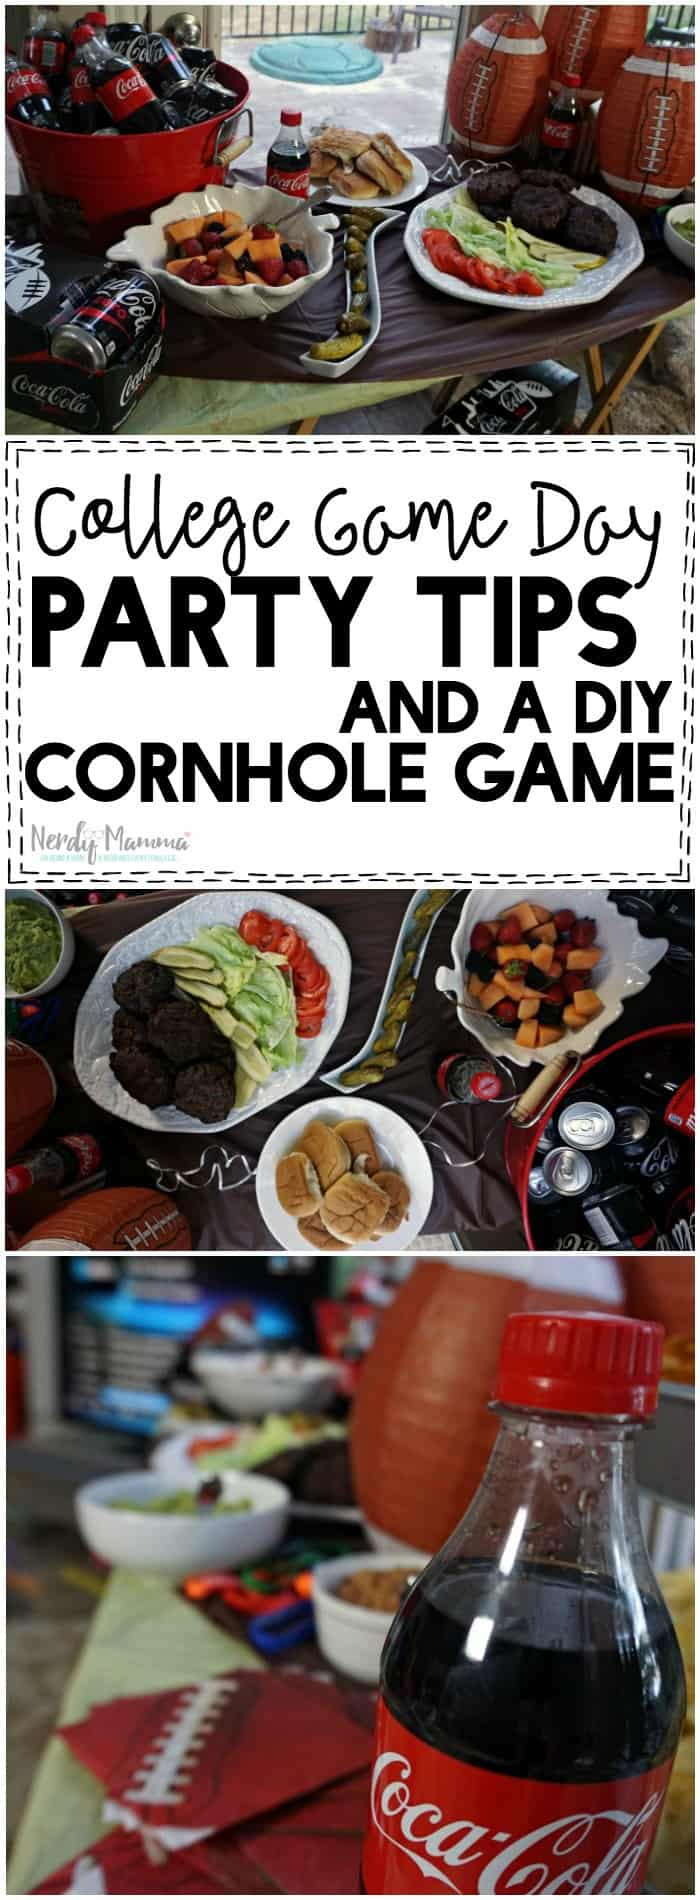 These party tips for College Game watching make throwing a party seem so simple! I love it!